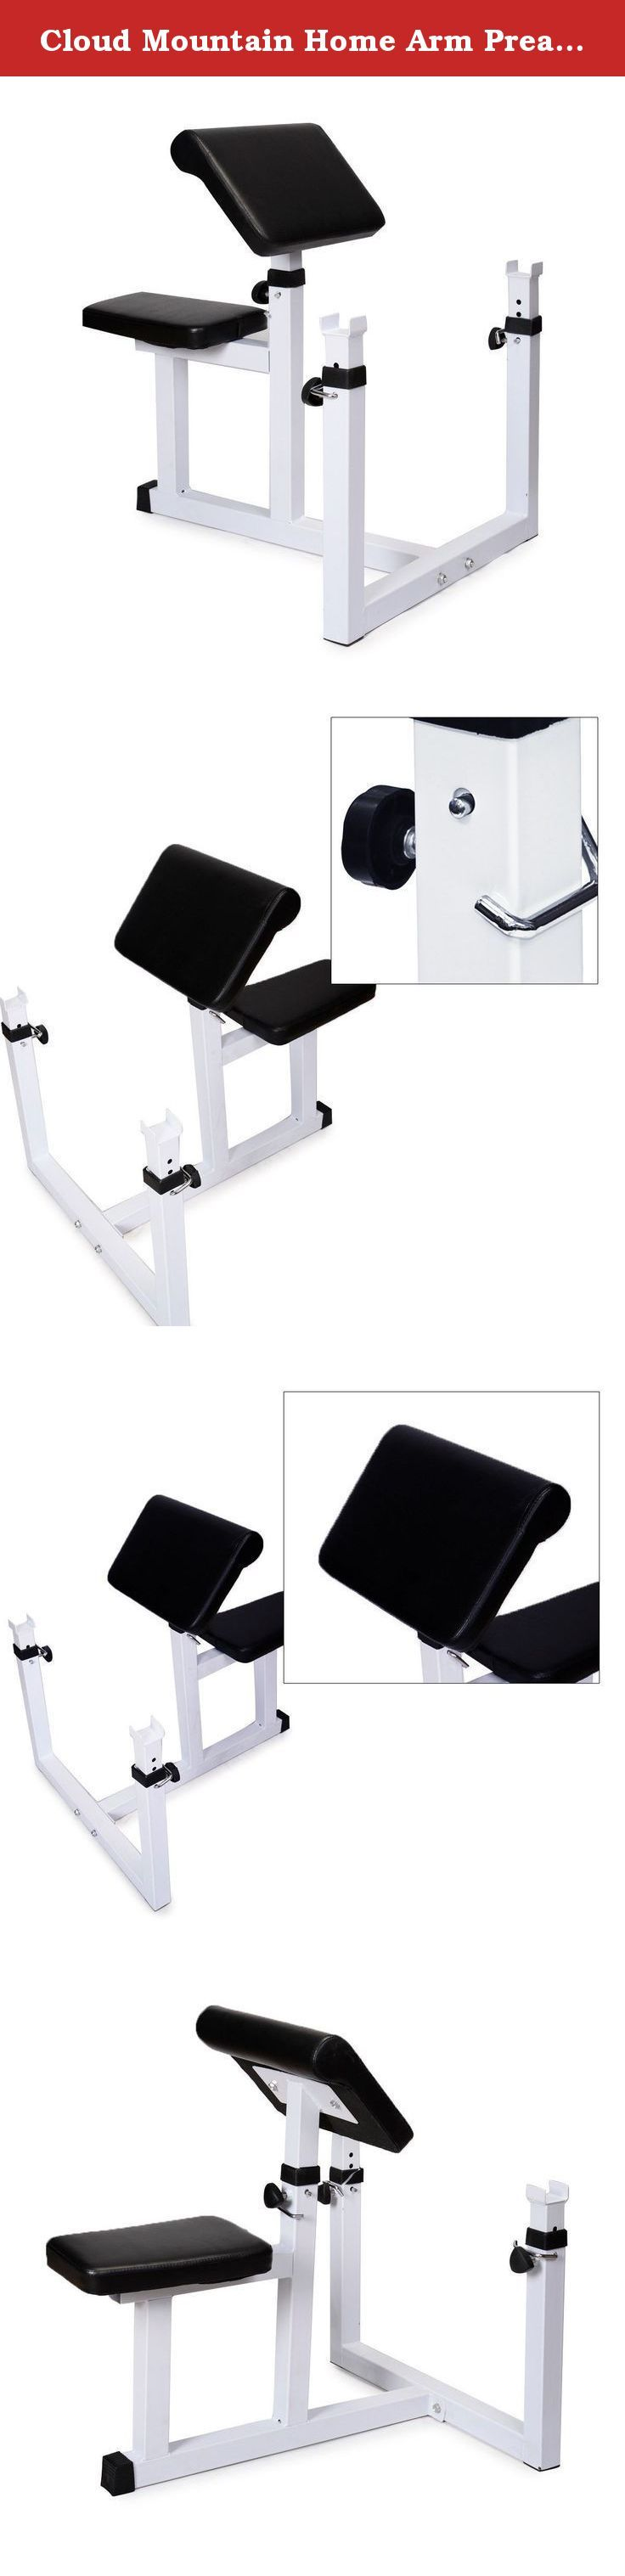 Cloud Mountain Home Arm Preacher Curl Weight Bench Seated Preacher Isolated Curl Dumbbell Biceps, White. Get a strong workout and build thick, crowned biceps when you use this machine in the comfort of your own home. The pad is angled specifically to isolate the biceps to the maximum level. The bicep curl machine is constructed from heavy-gauge steel. The bench features an extra-wide seat and arm pads for your comfort. Features: -Reinforced steel frame for complete core workouts. -Extra…